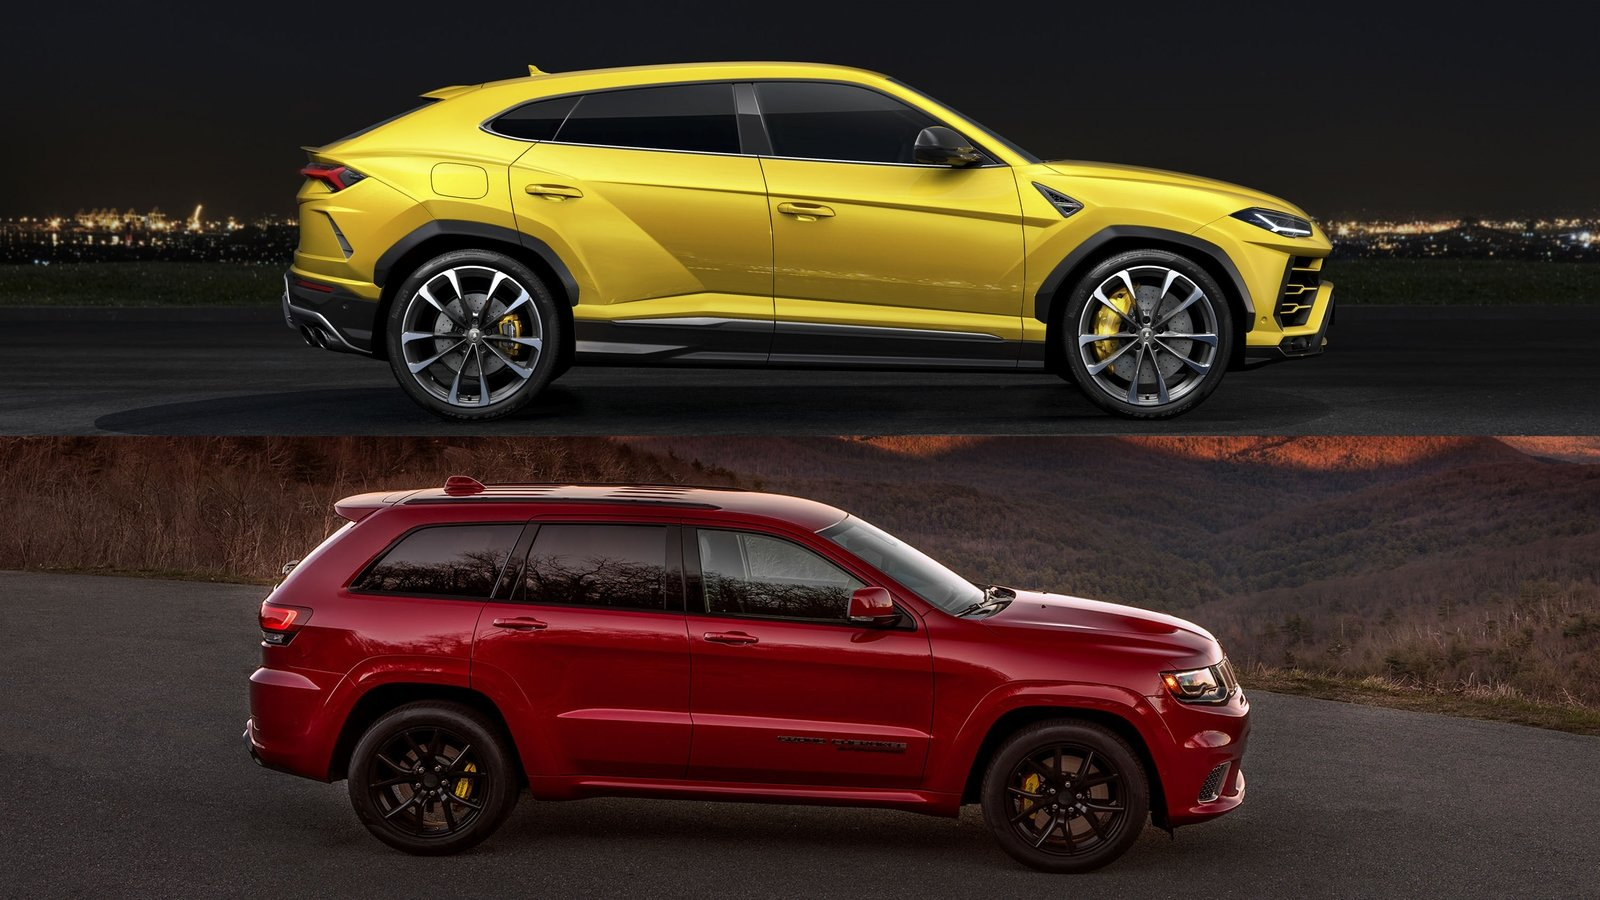 2018 Jeep Grand Cherokee >> Table For Two: Comparing The Lamborghini Urus And The Jeep ...